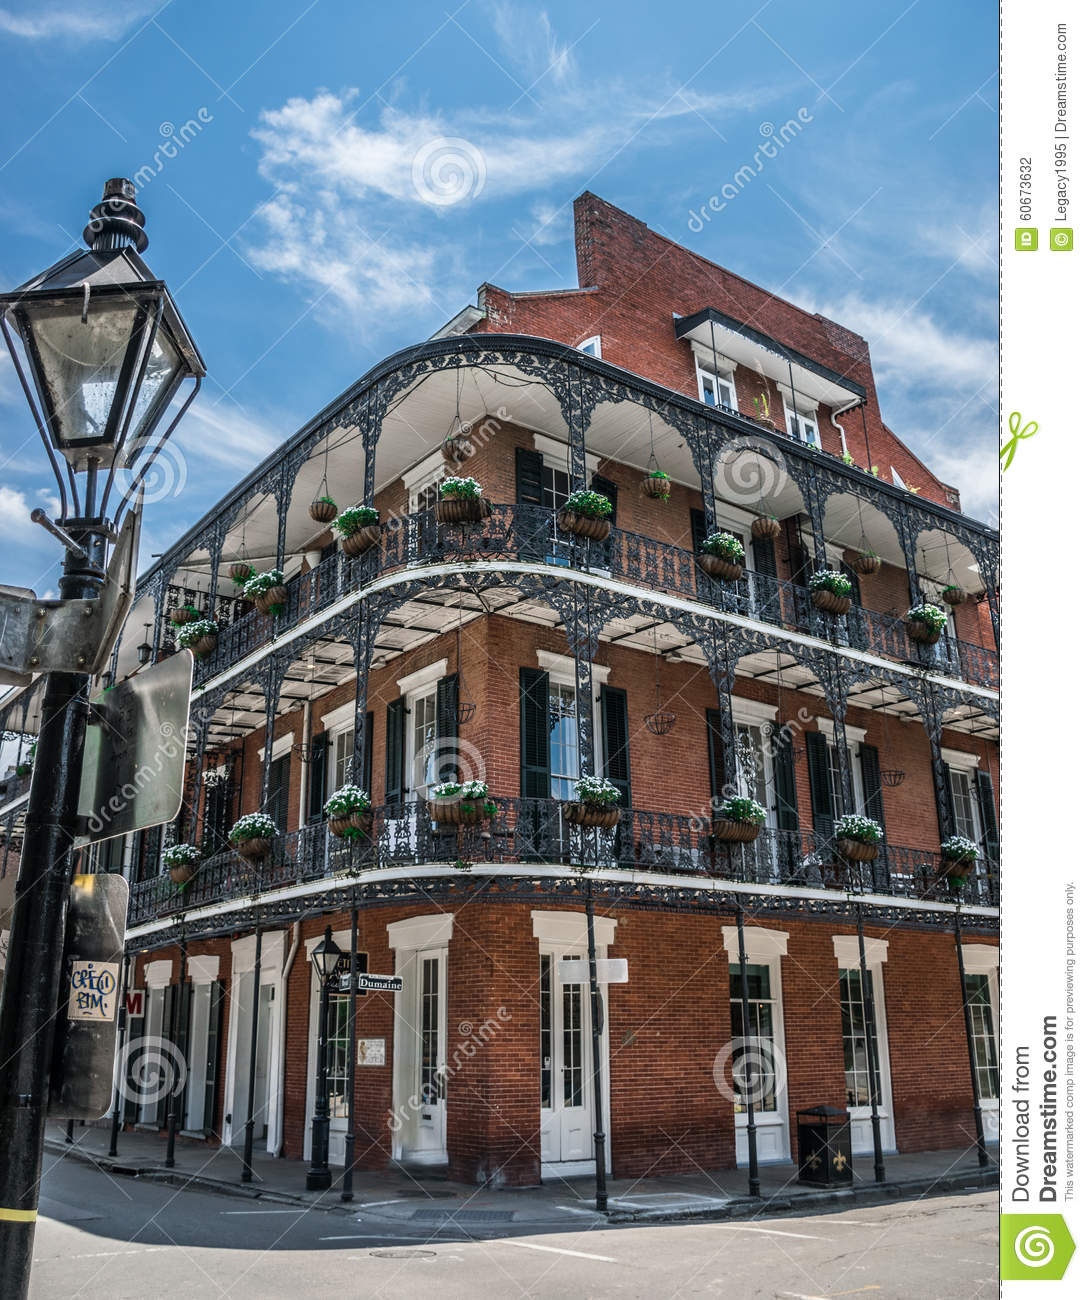 New Orleans French Quarter Architecture Stock Photo Image 60673632